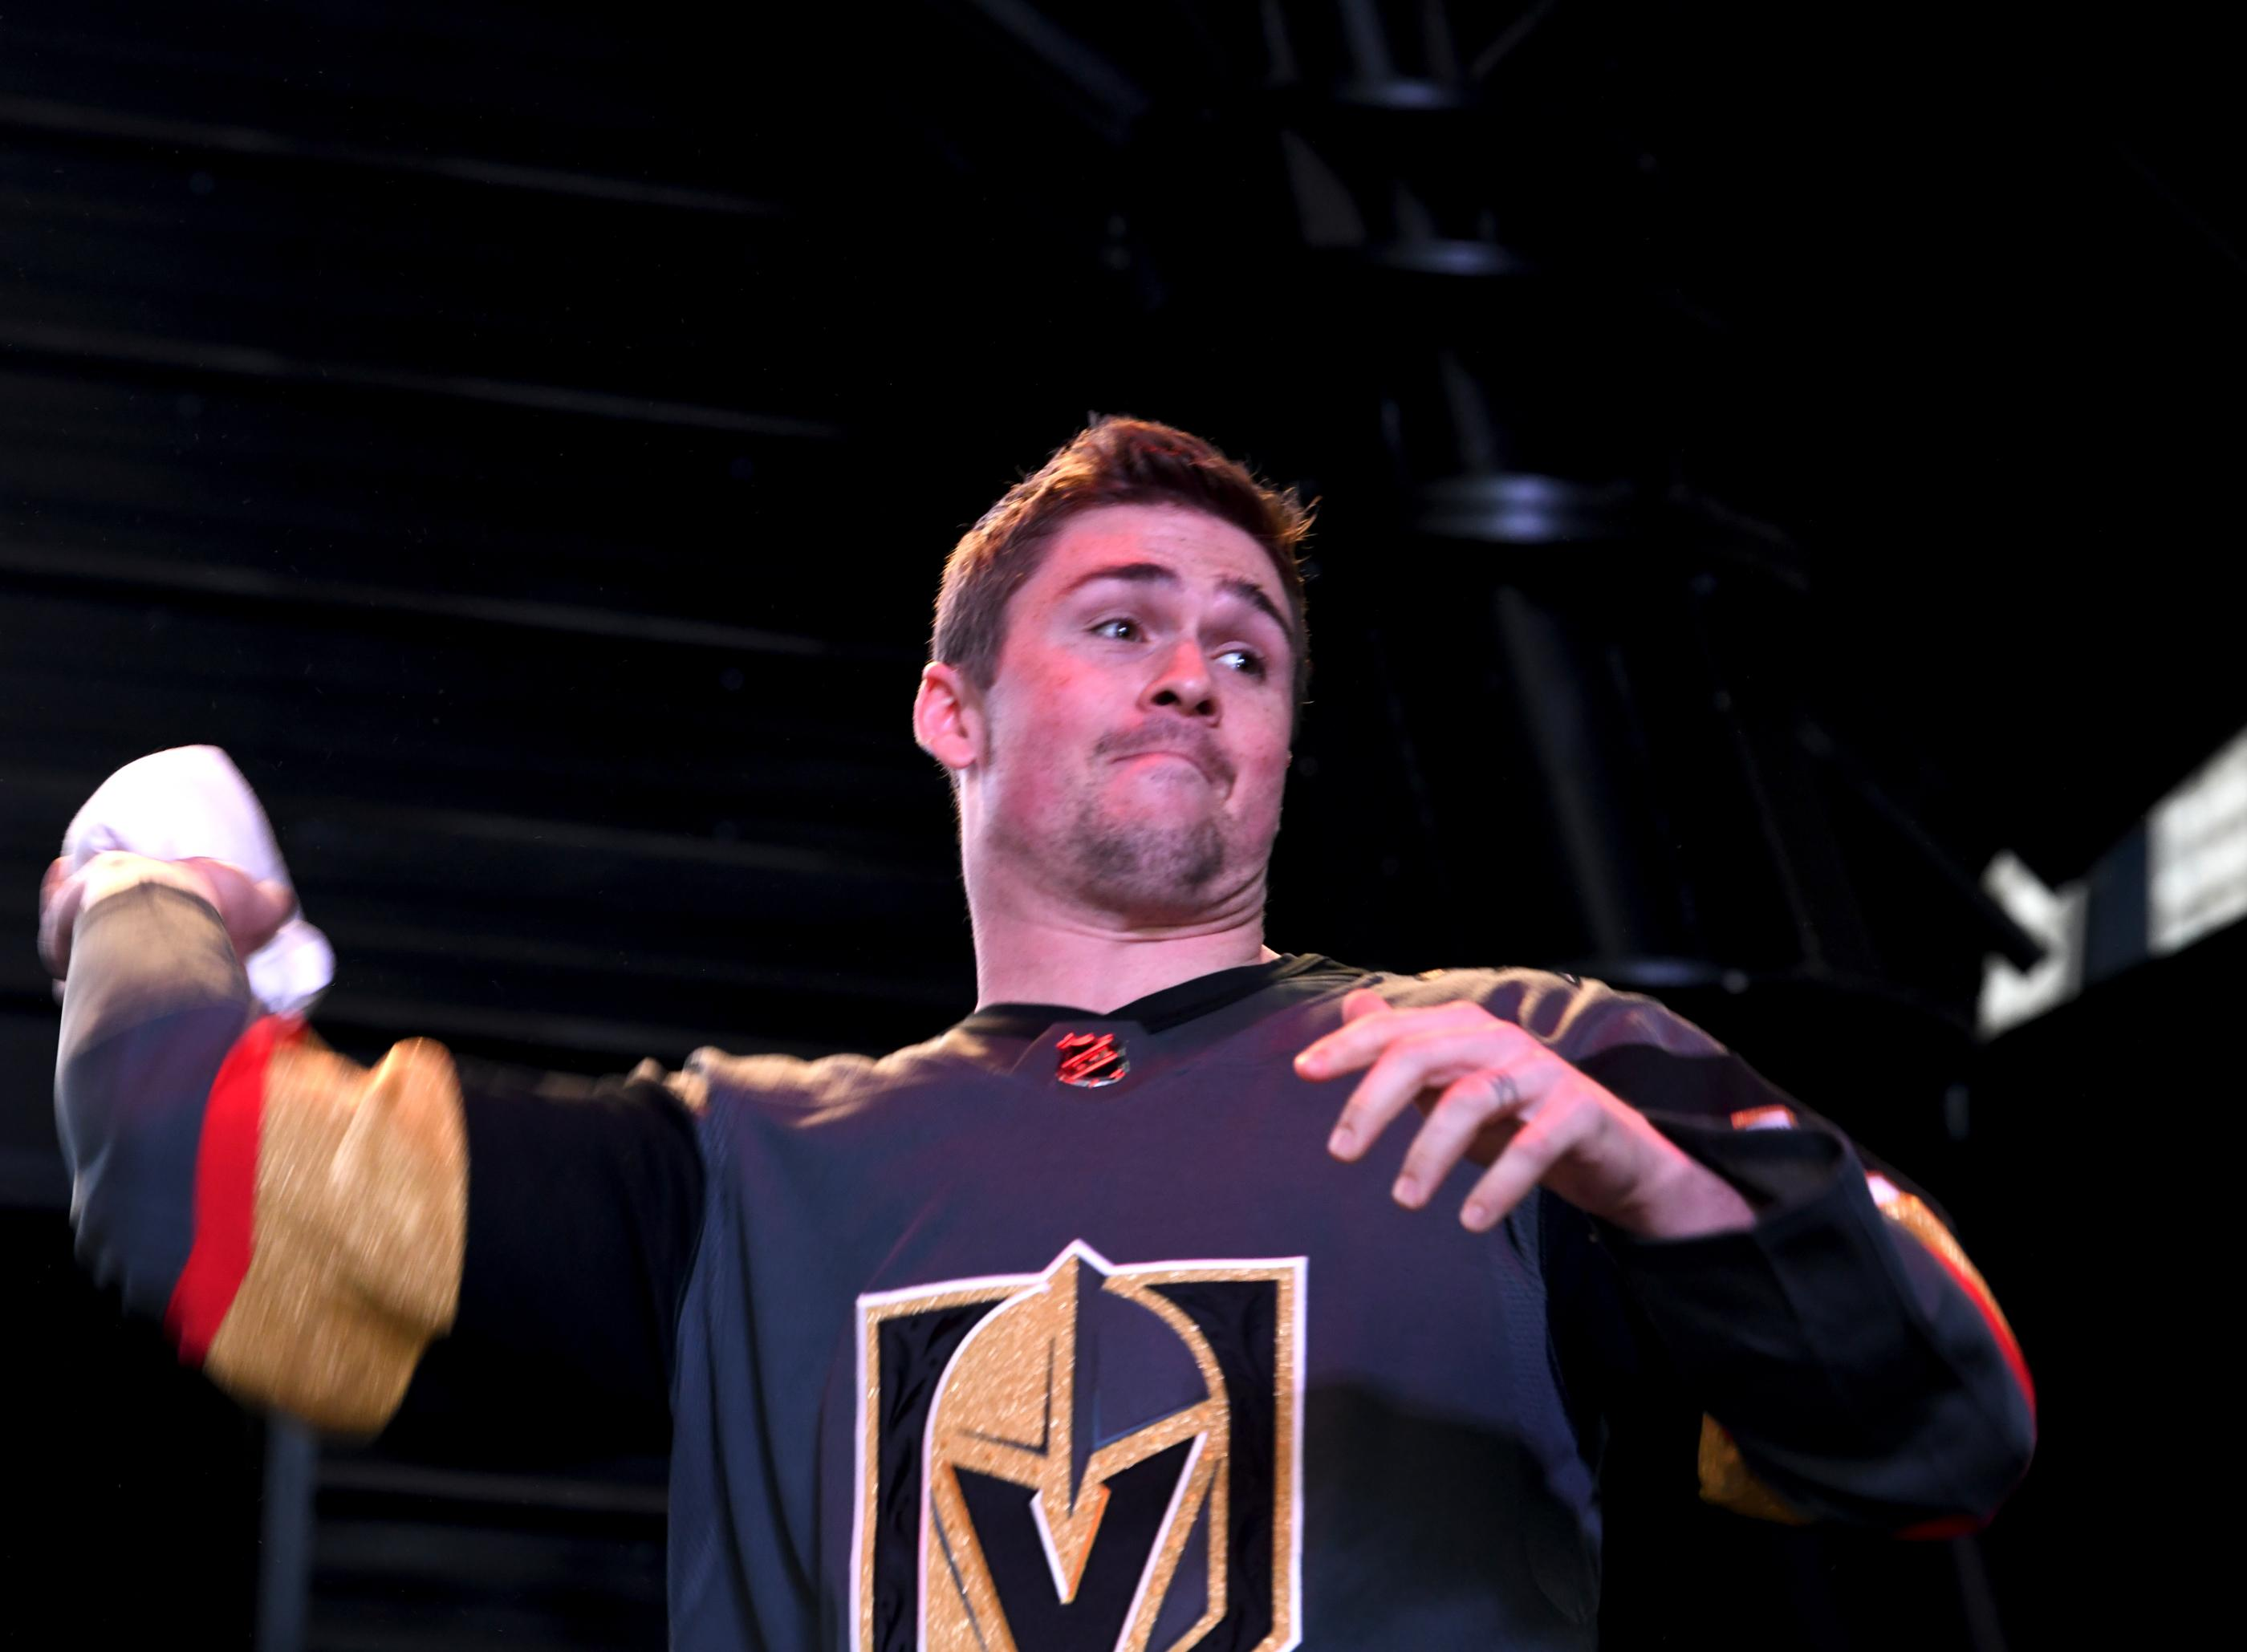 The Golden Knights host a Fan Fest with the D Las Vegas and Fremont Street Experience. Las Vegas Golden Knights player Ryan Carpenter prepares to throw a t-shirt to fans as the team takes the stage at Fremont Street Experience. Sunday, January 14, 2017. CREDIT: Glenn Pinkerton/Las Vegas News Bureau